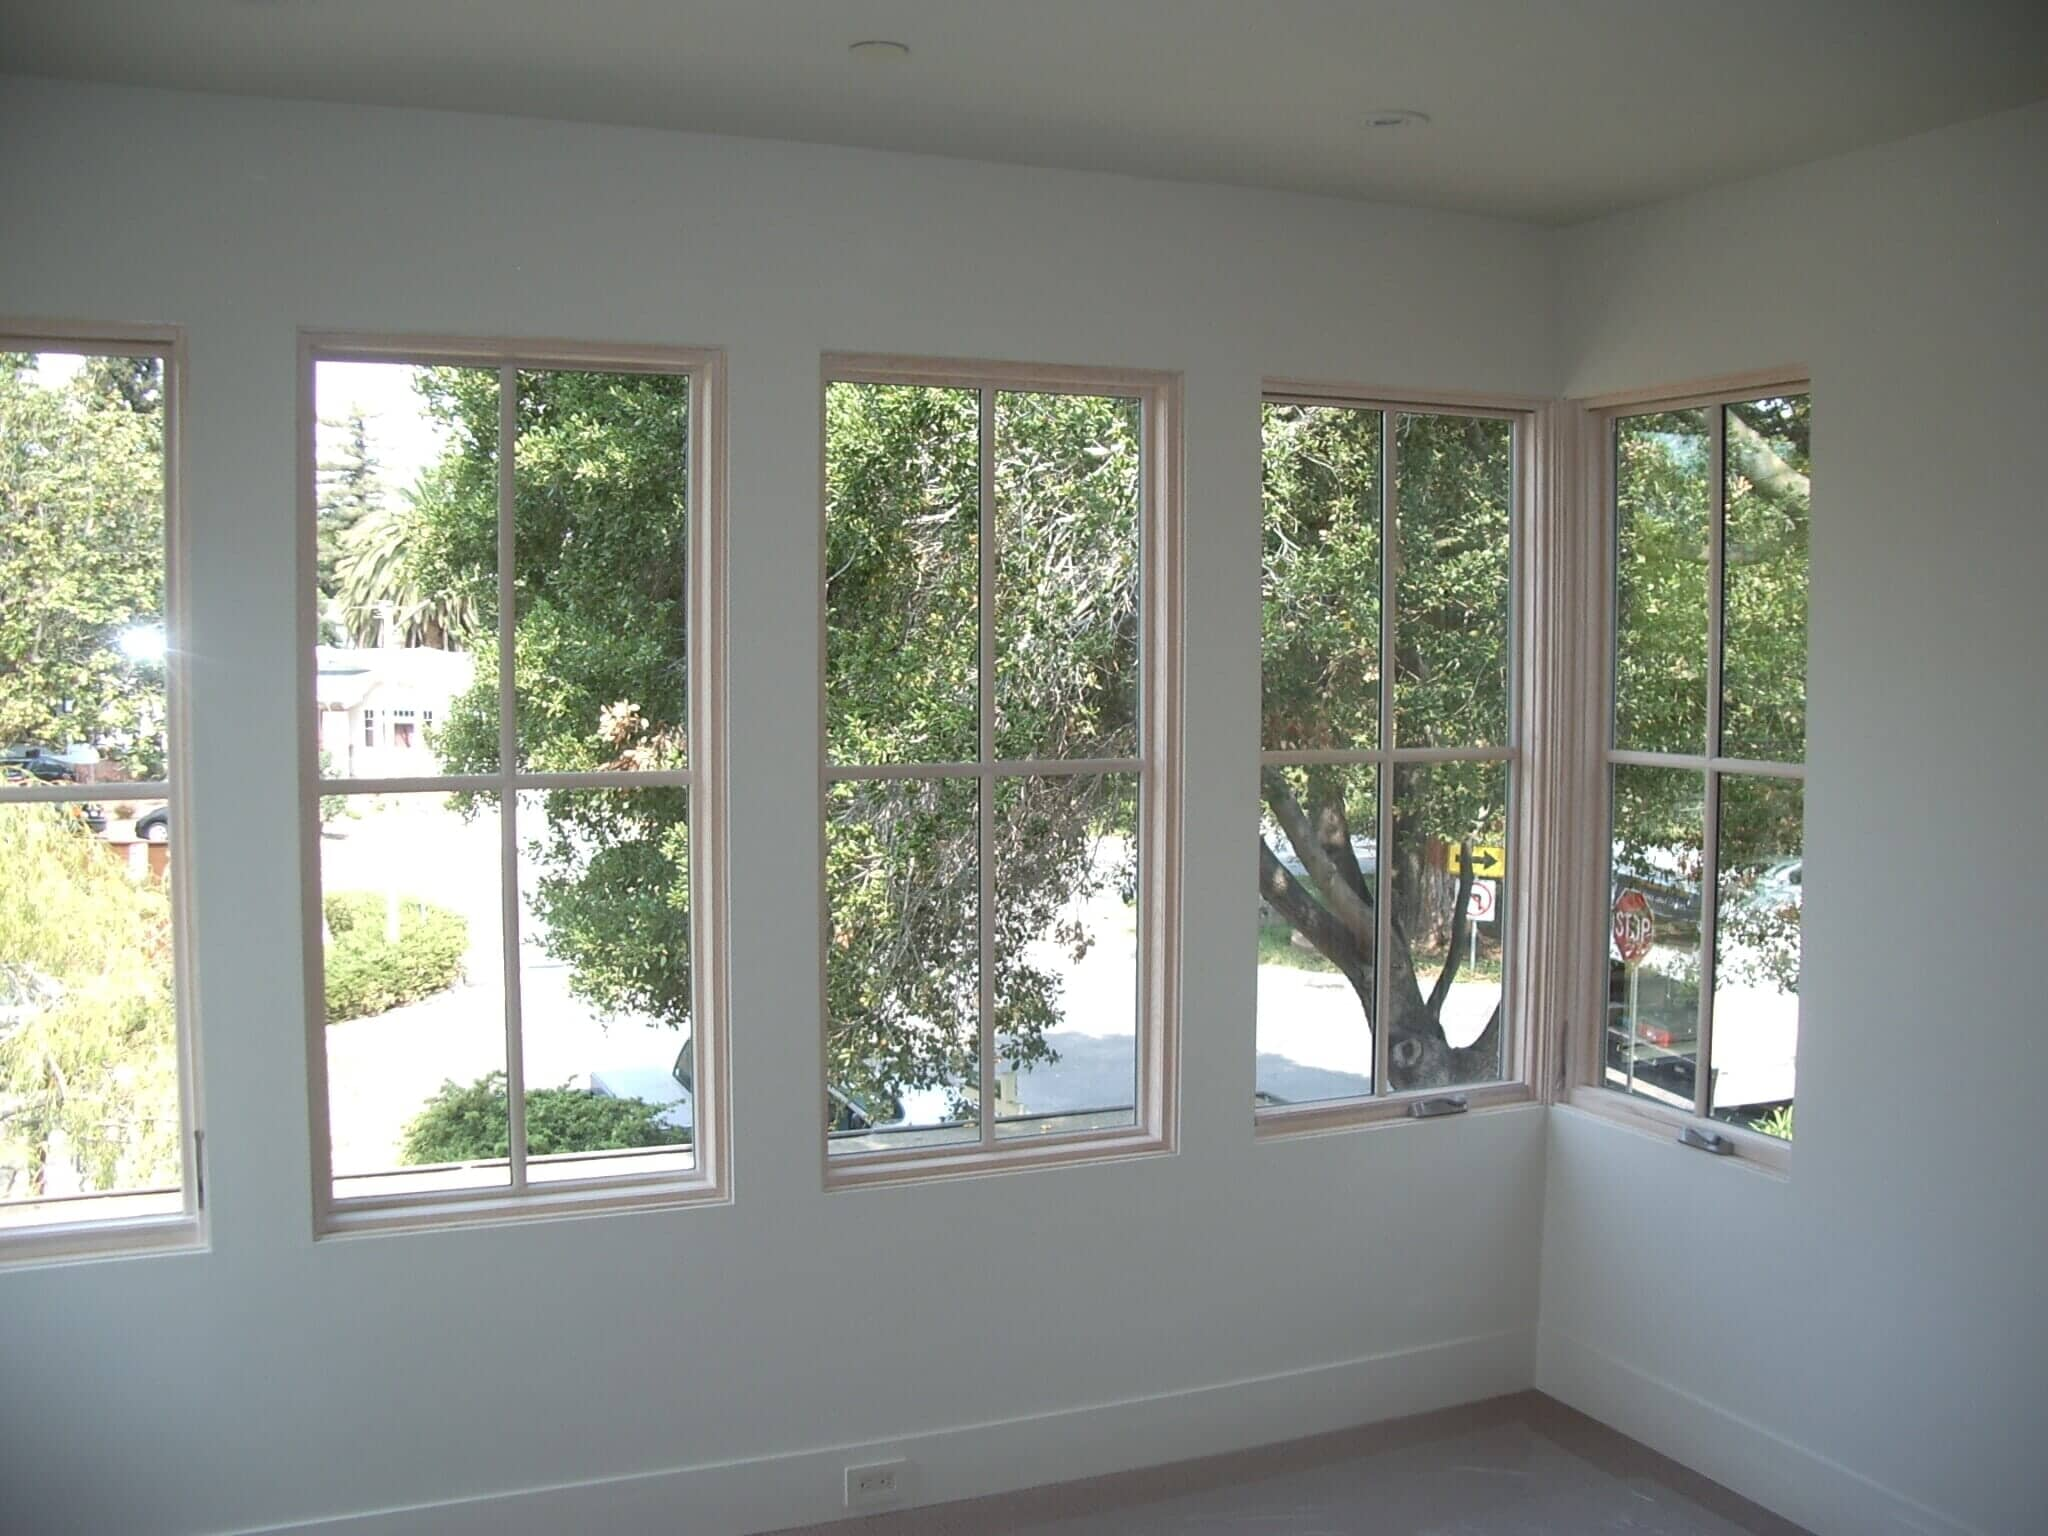 No Interior Trim, Select Windows, Los Altos, California